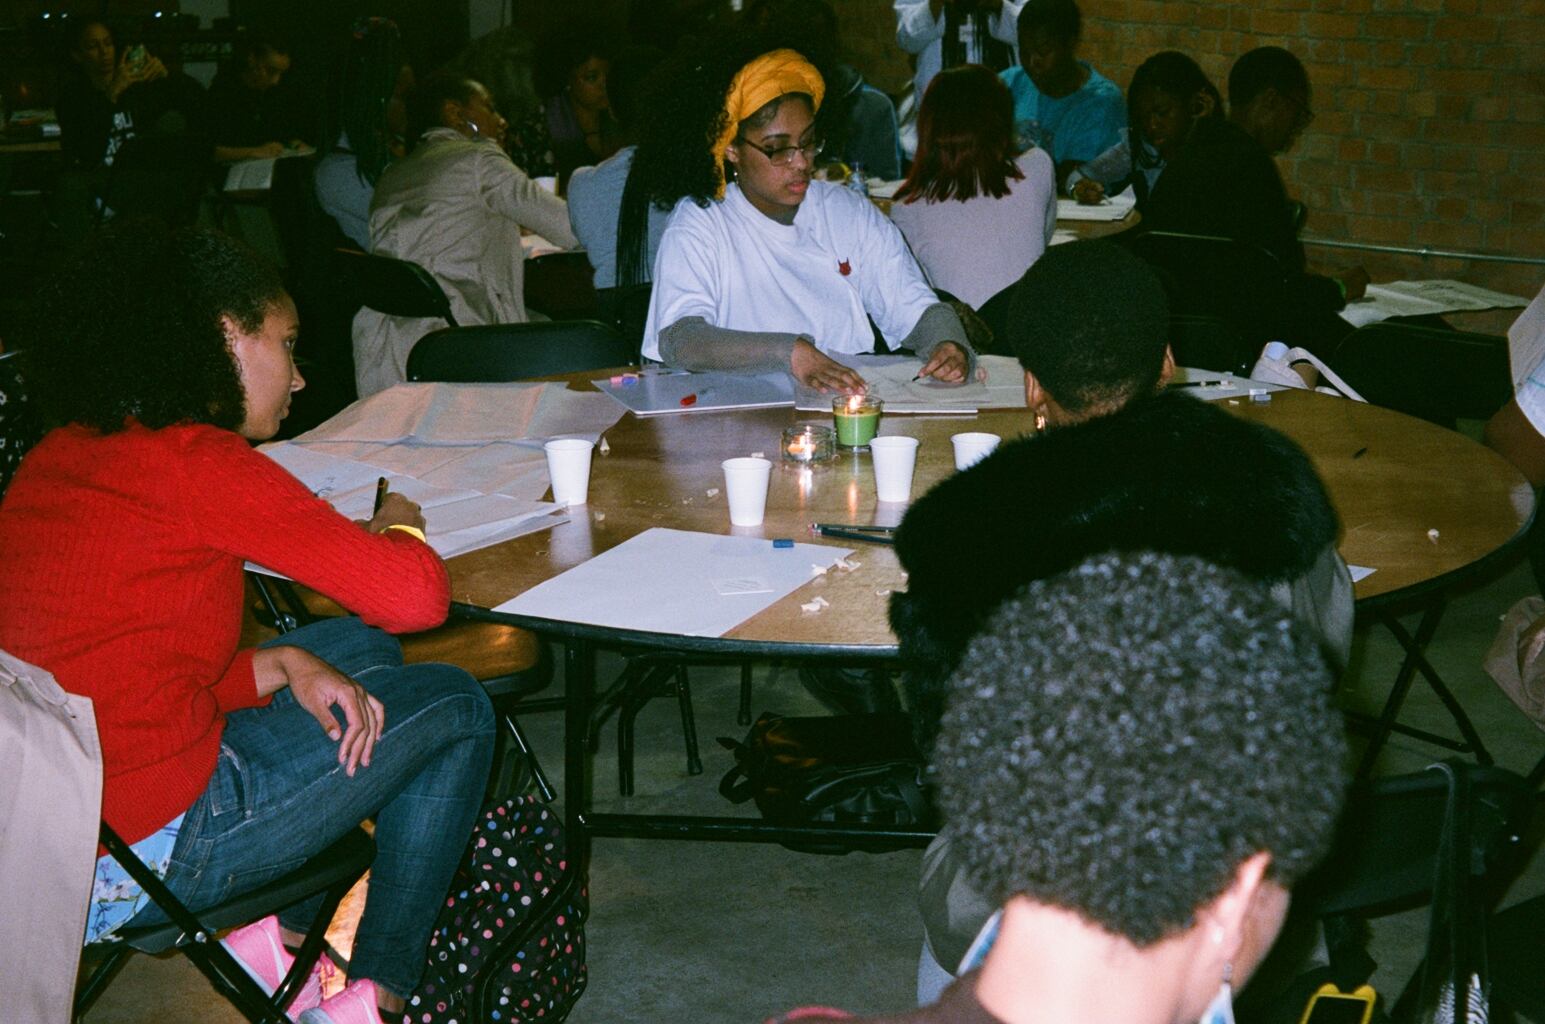 Workshops - Workshops ranged from Black motherhood, employability, gender and sexuality and a zine making workshop